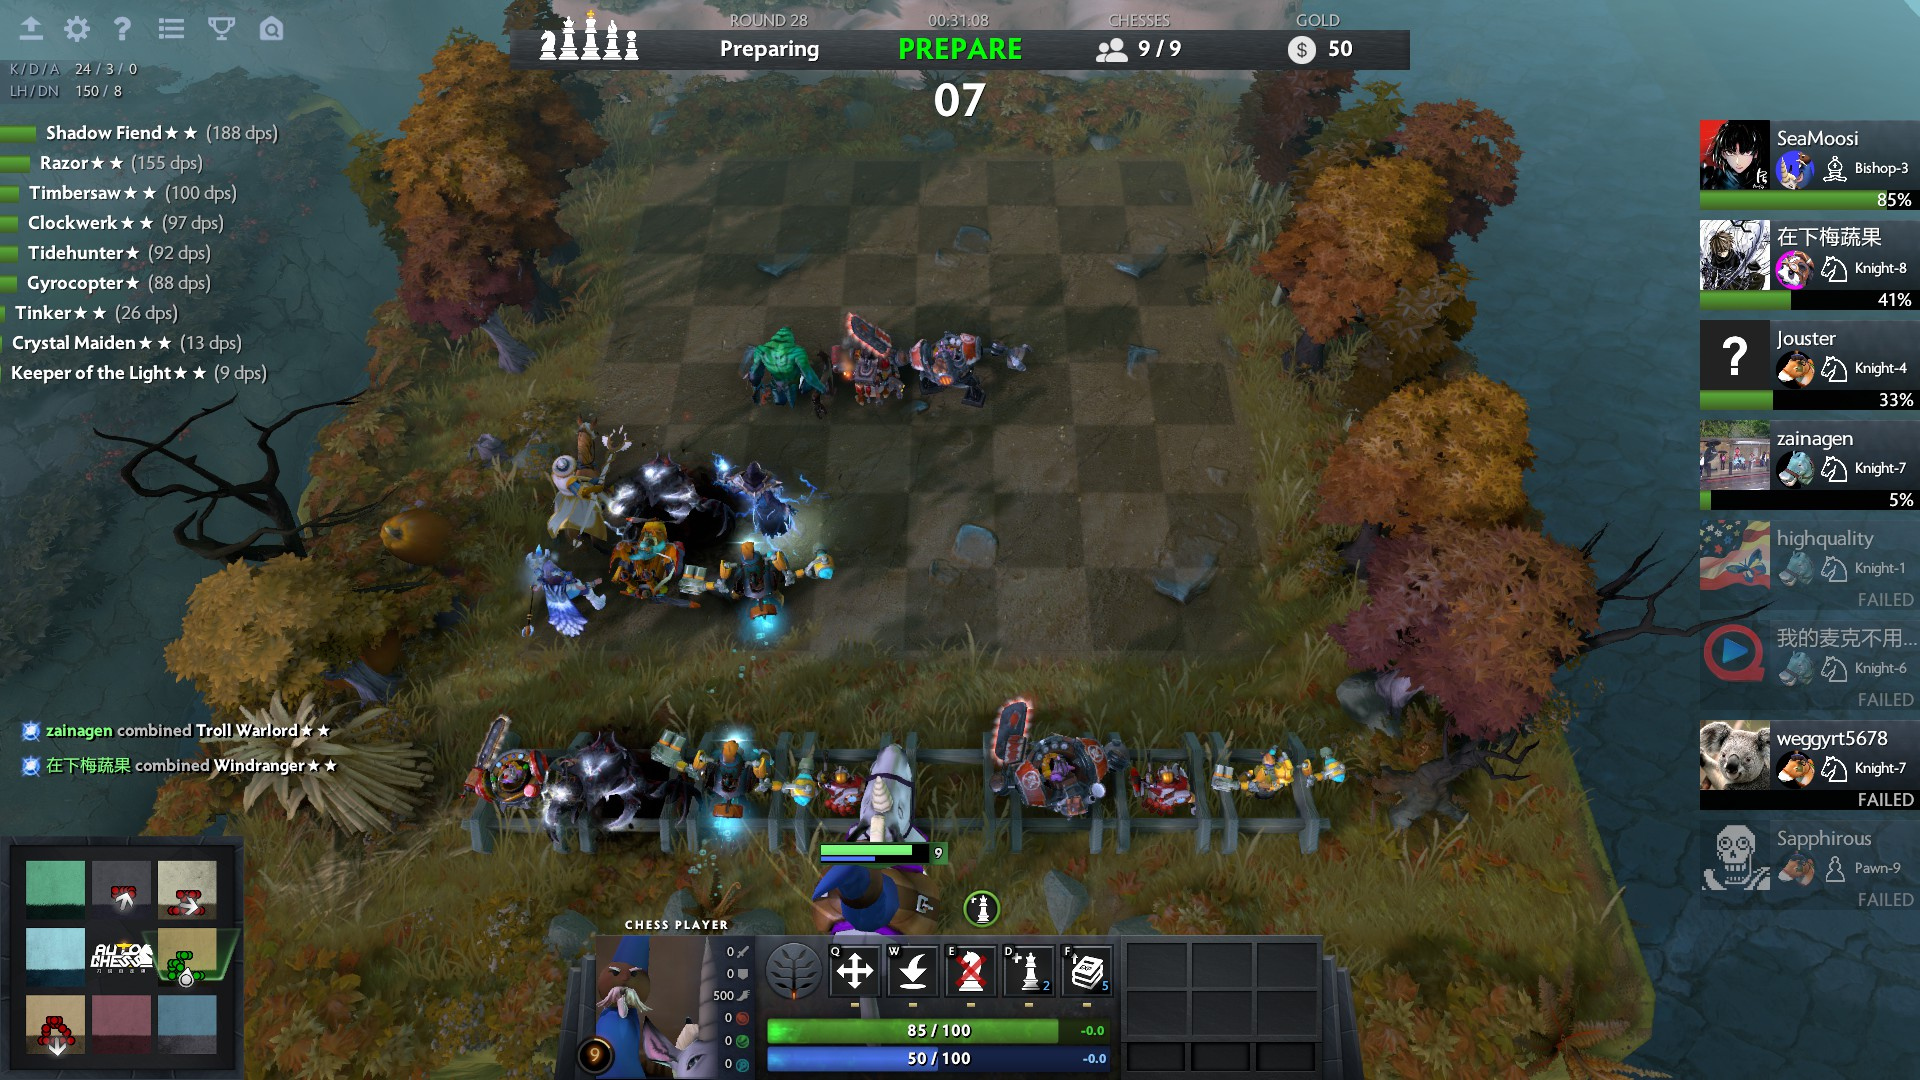 The Dota 2 Mod That Might Be The Next Big Video Game Genre